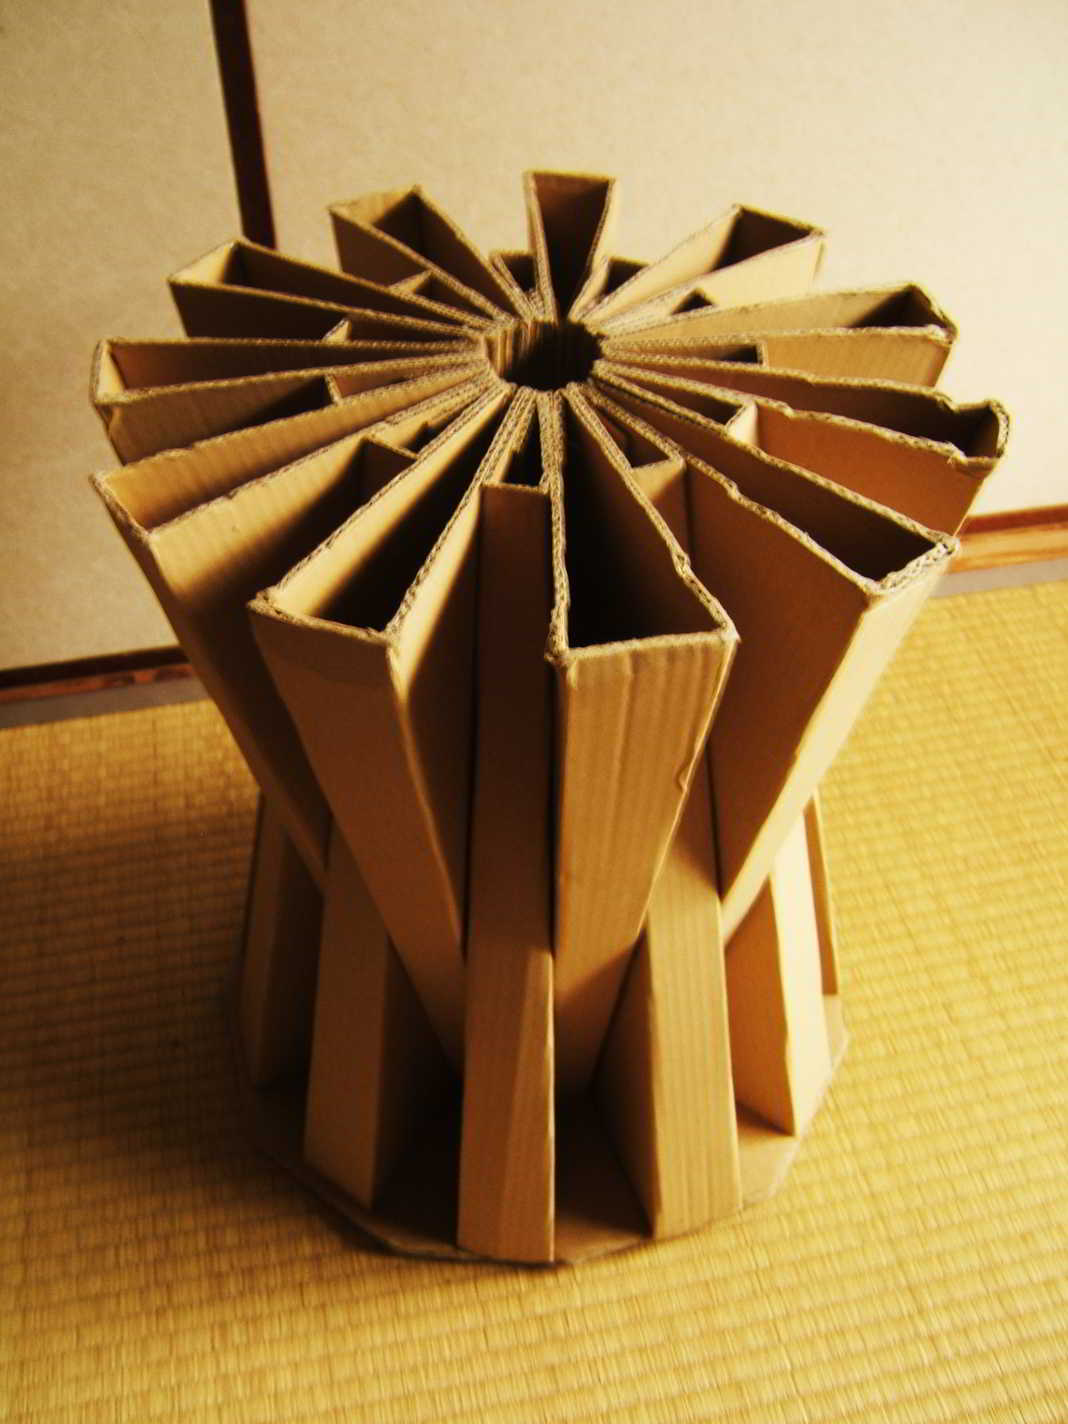 Cardboard chair design no glue - Cardboard Chair Design No Glue 15